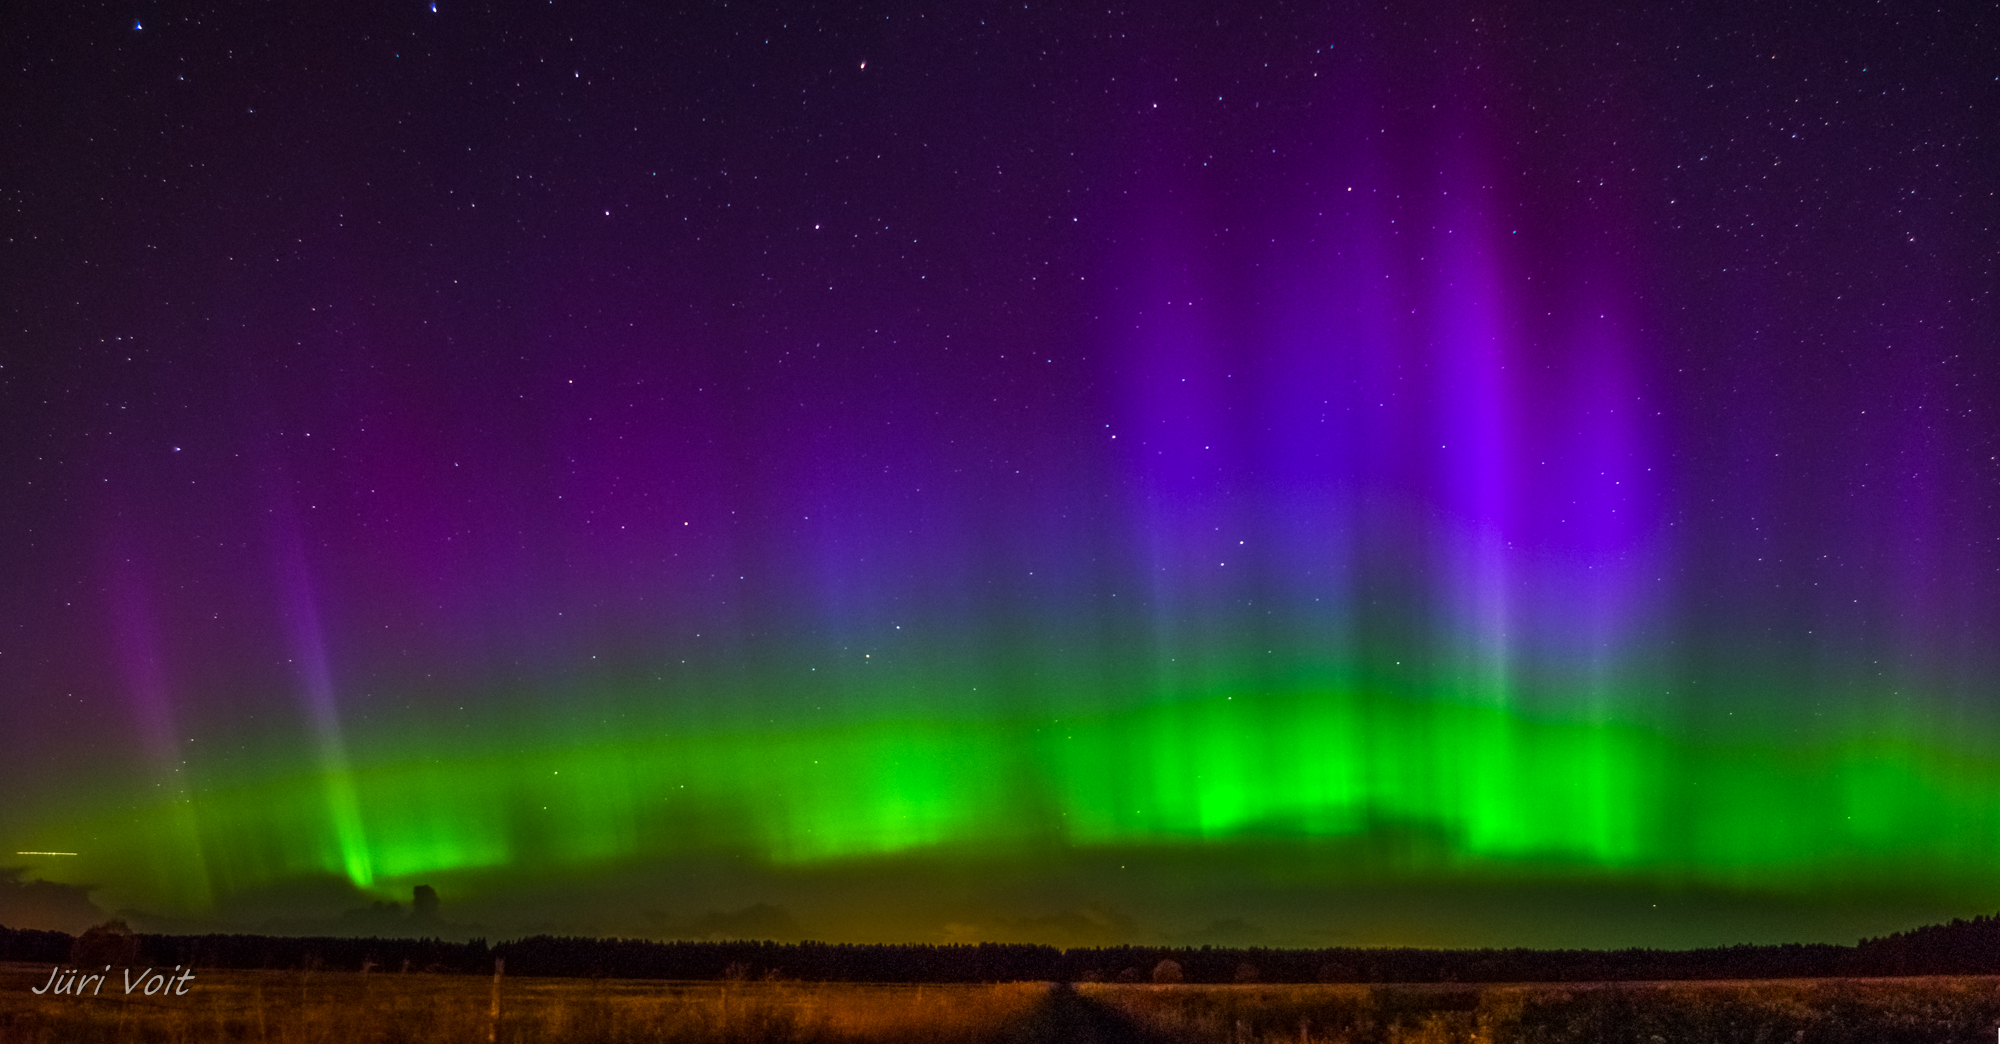 Purple and Green Aurora in Estonia | NASA